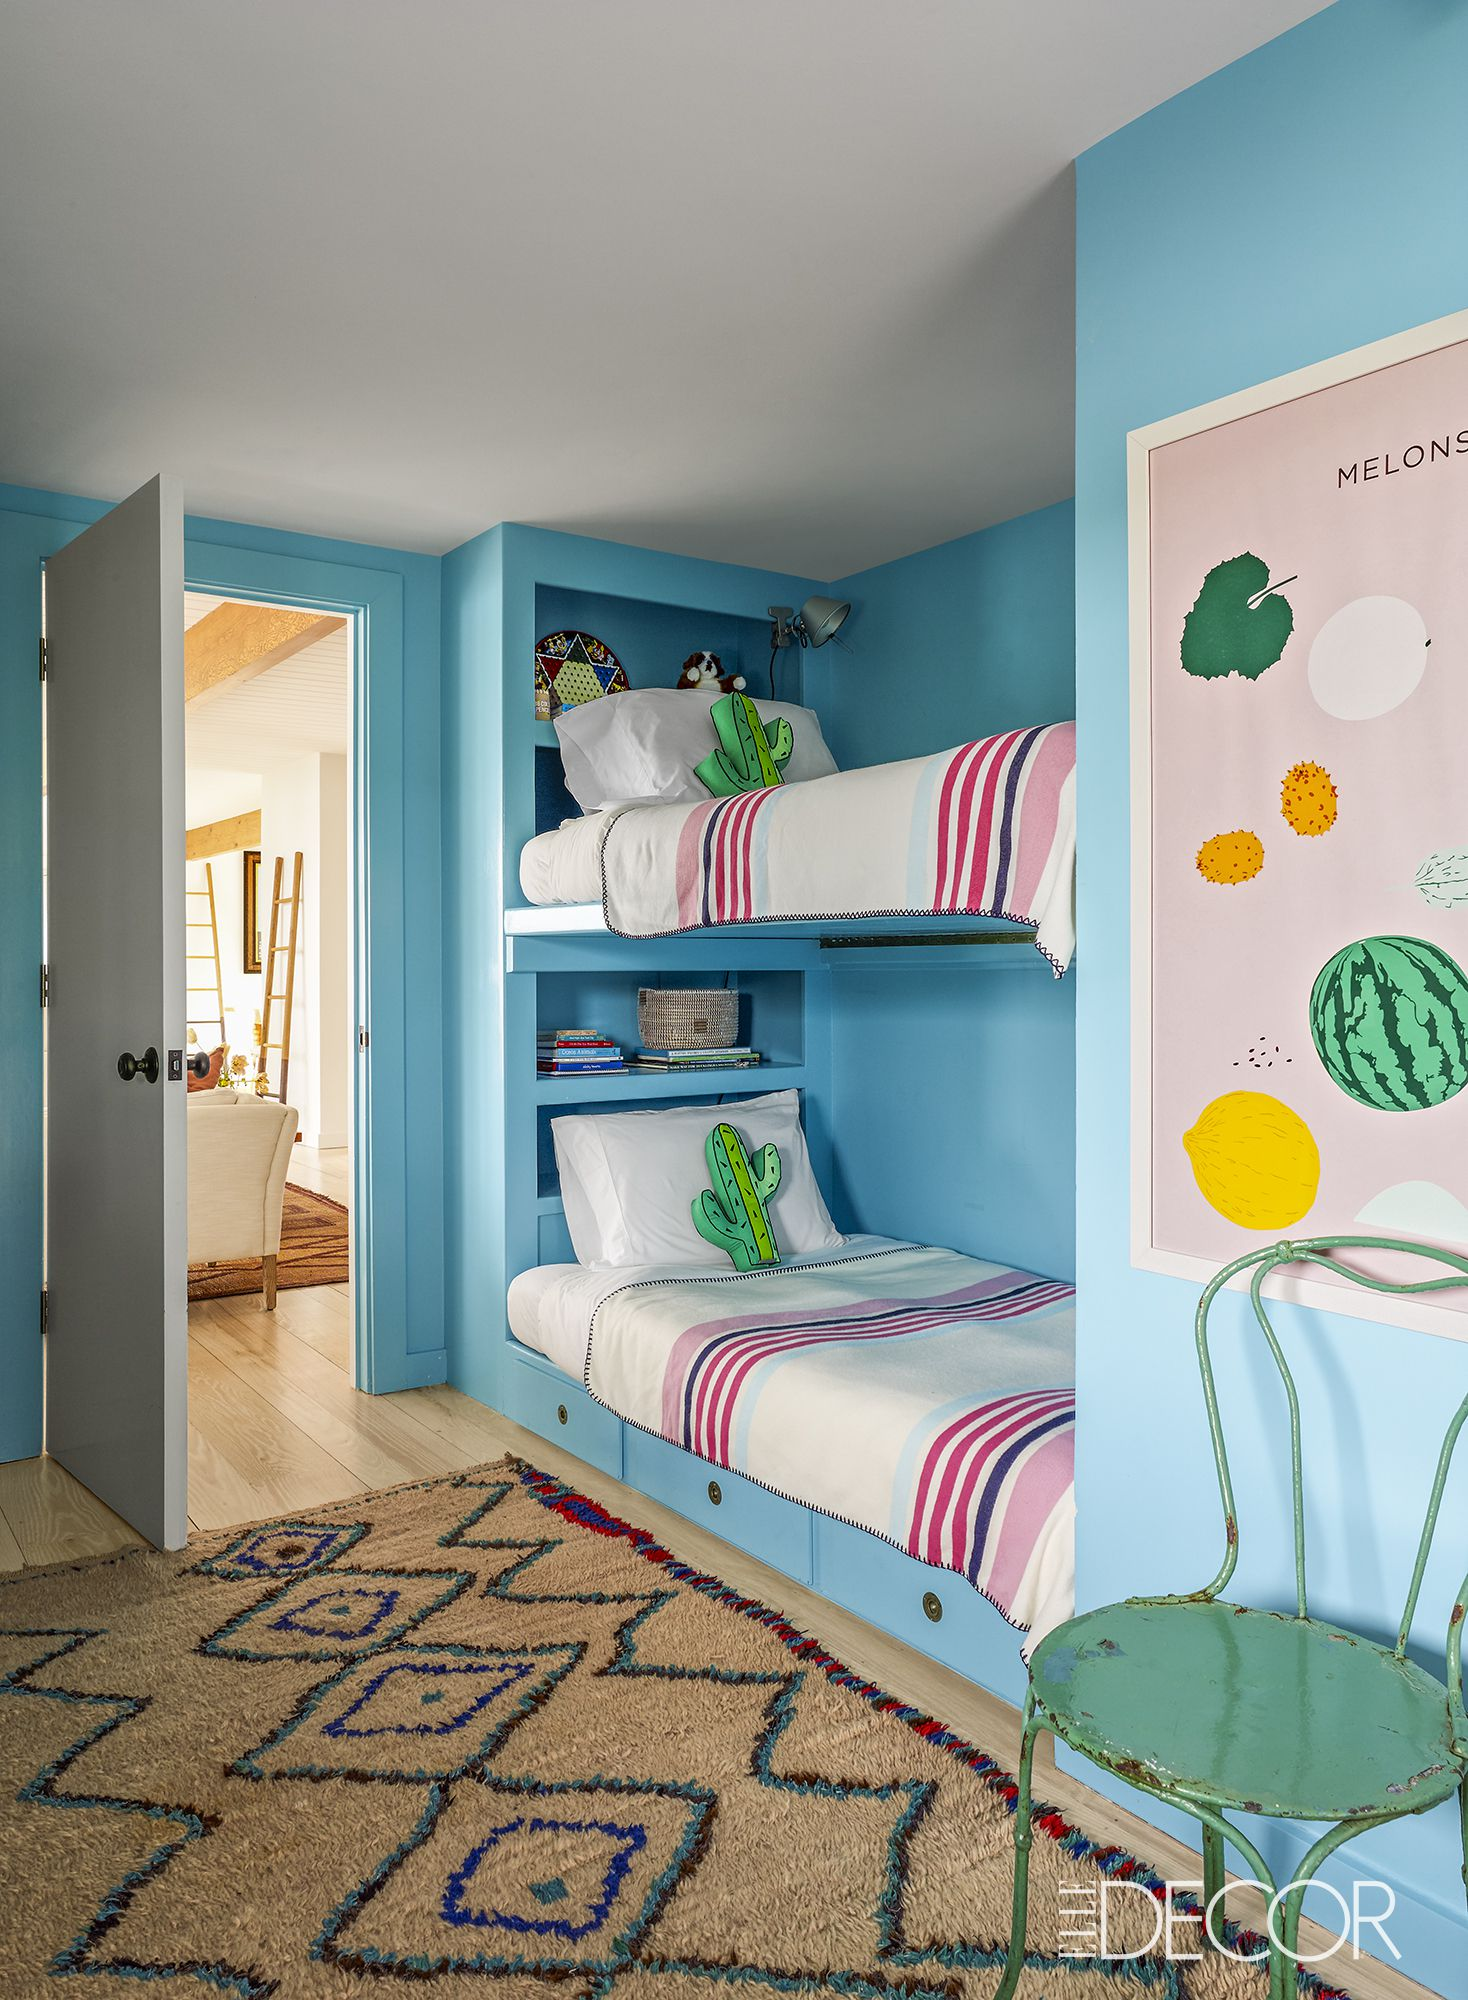 kids room decor ideas 18 cool kidsu0027 room decorating ideas - kids room decor CCJMWBU